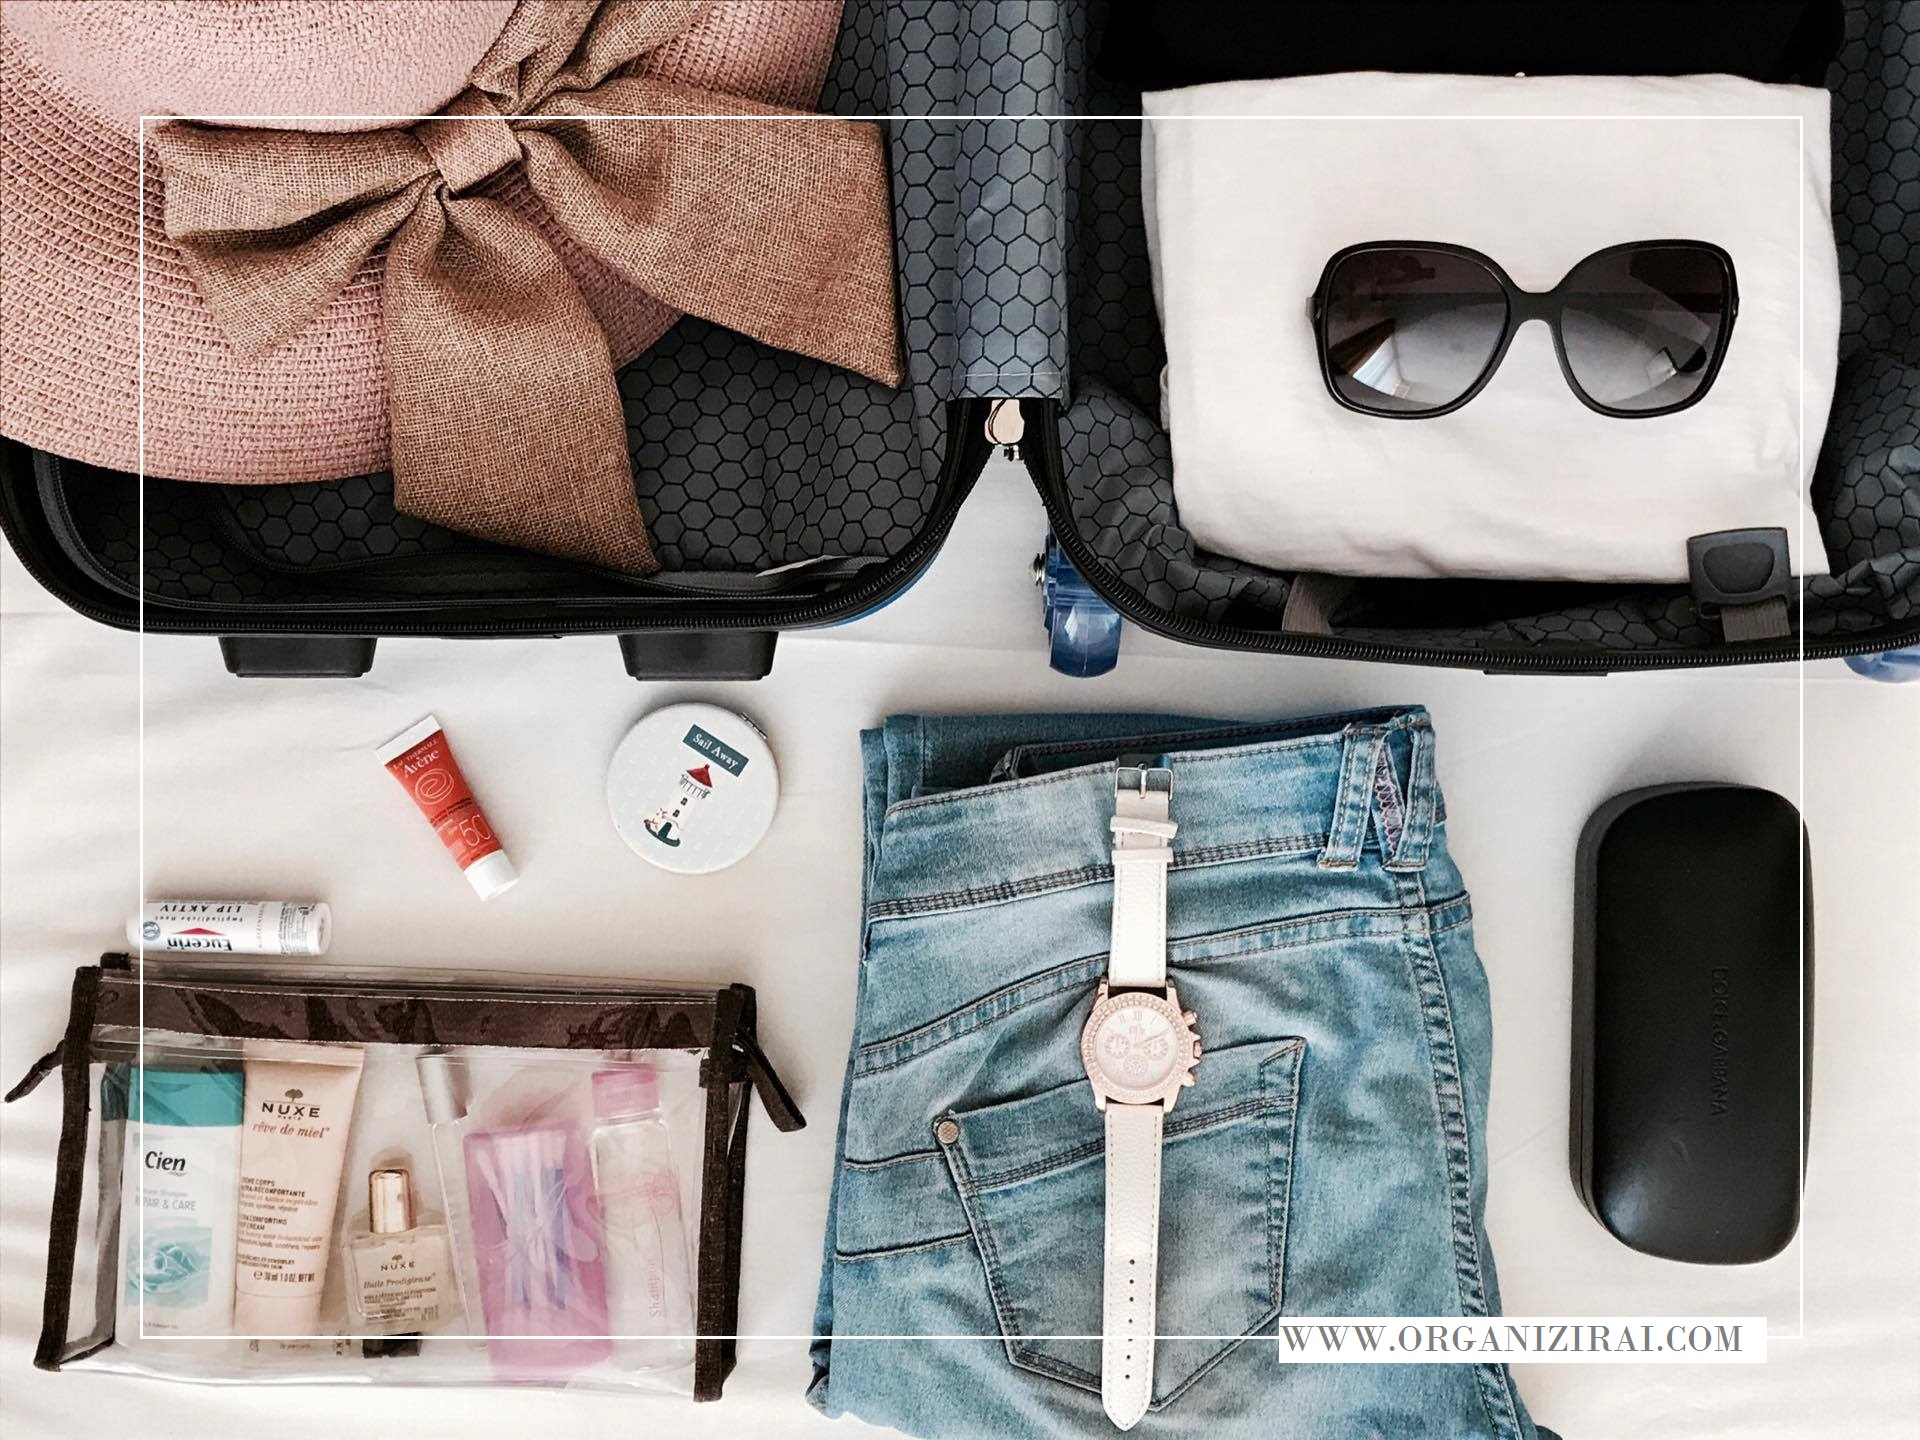 packing-tips-and-trics-travel-tips-suveti-trikove-putuvane-kufar-bagaj-organizirai-organizing-blog-cveti-best-bulgarian-bloggers-organizirai.com8